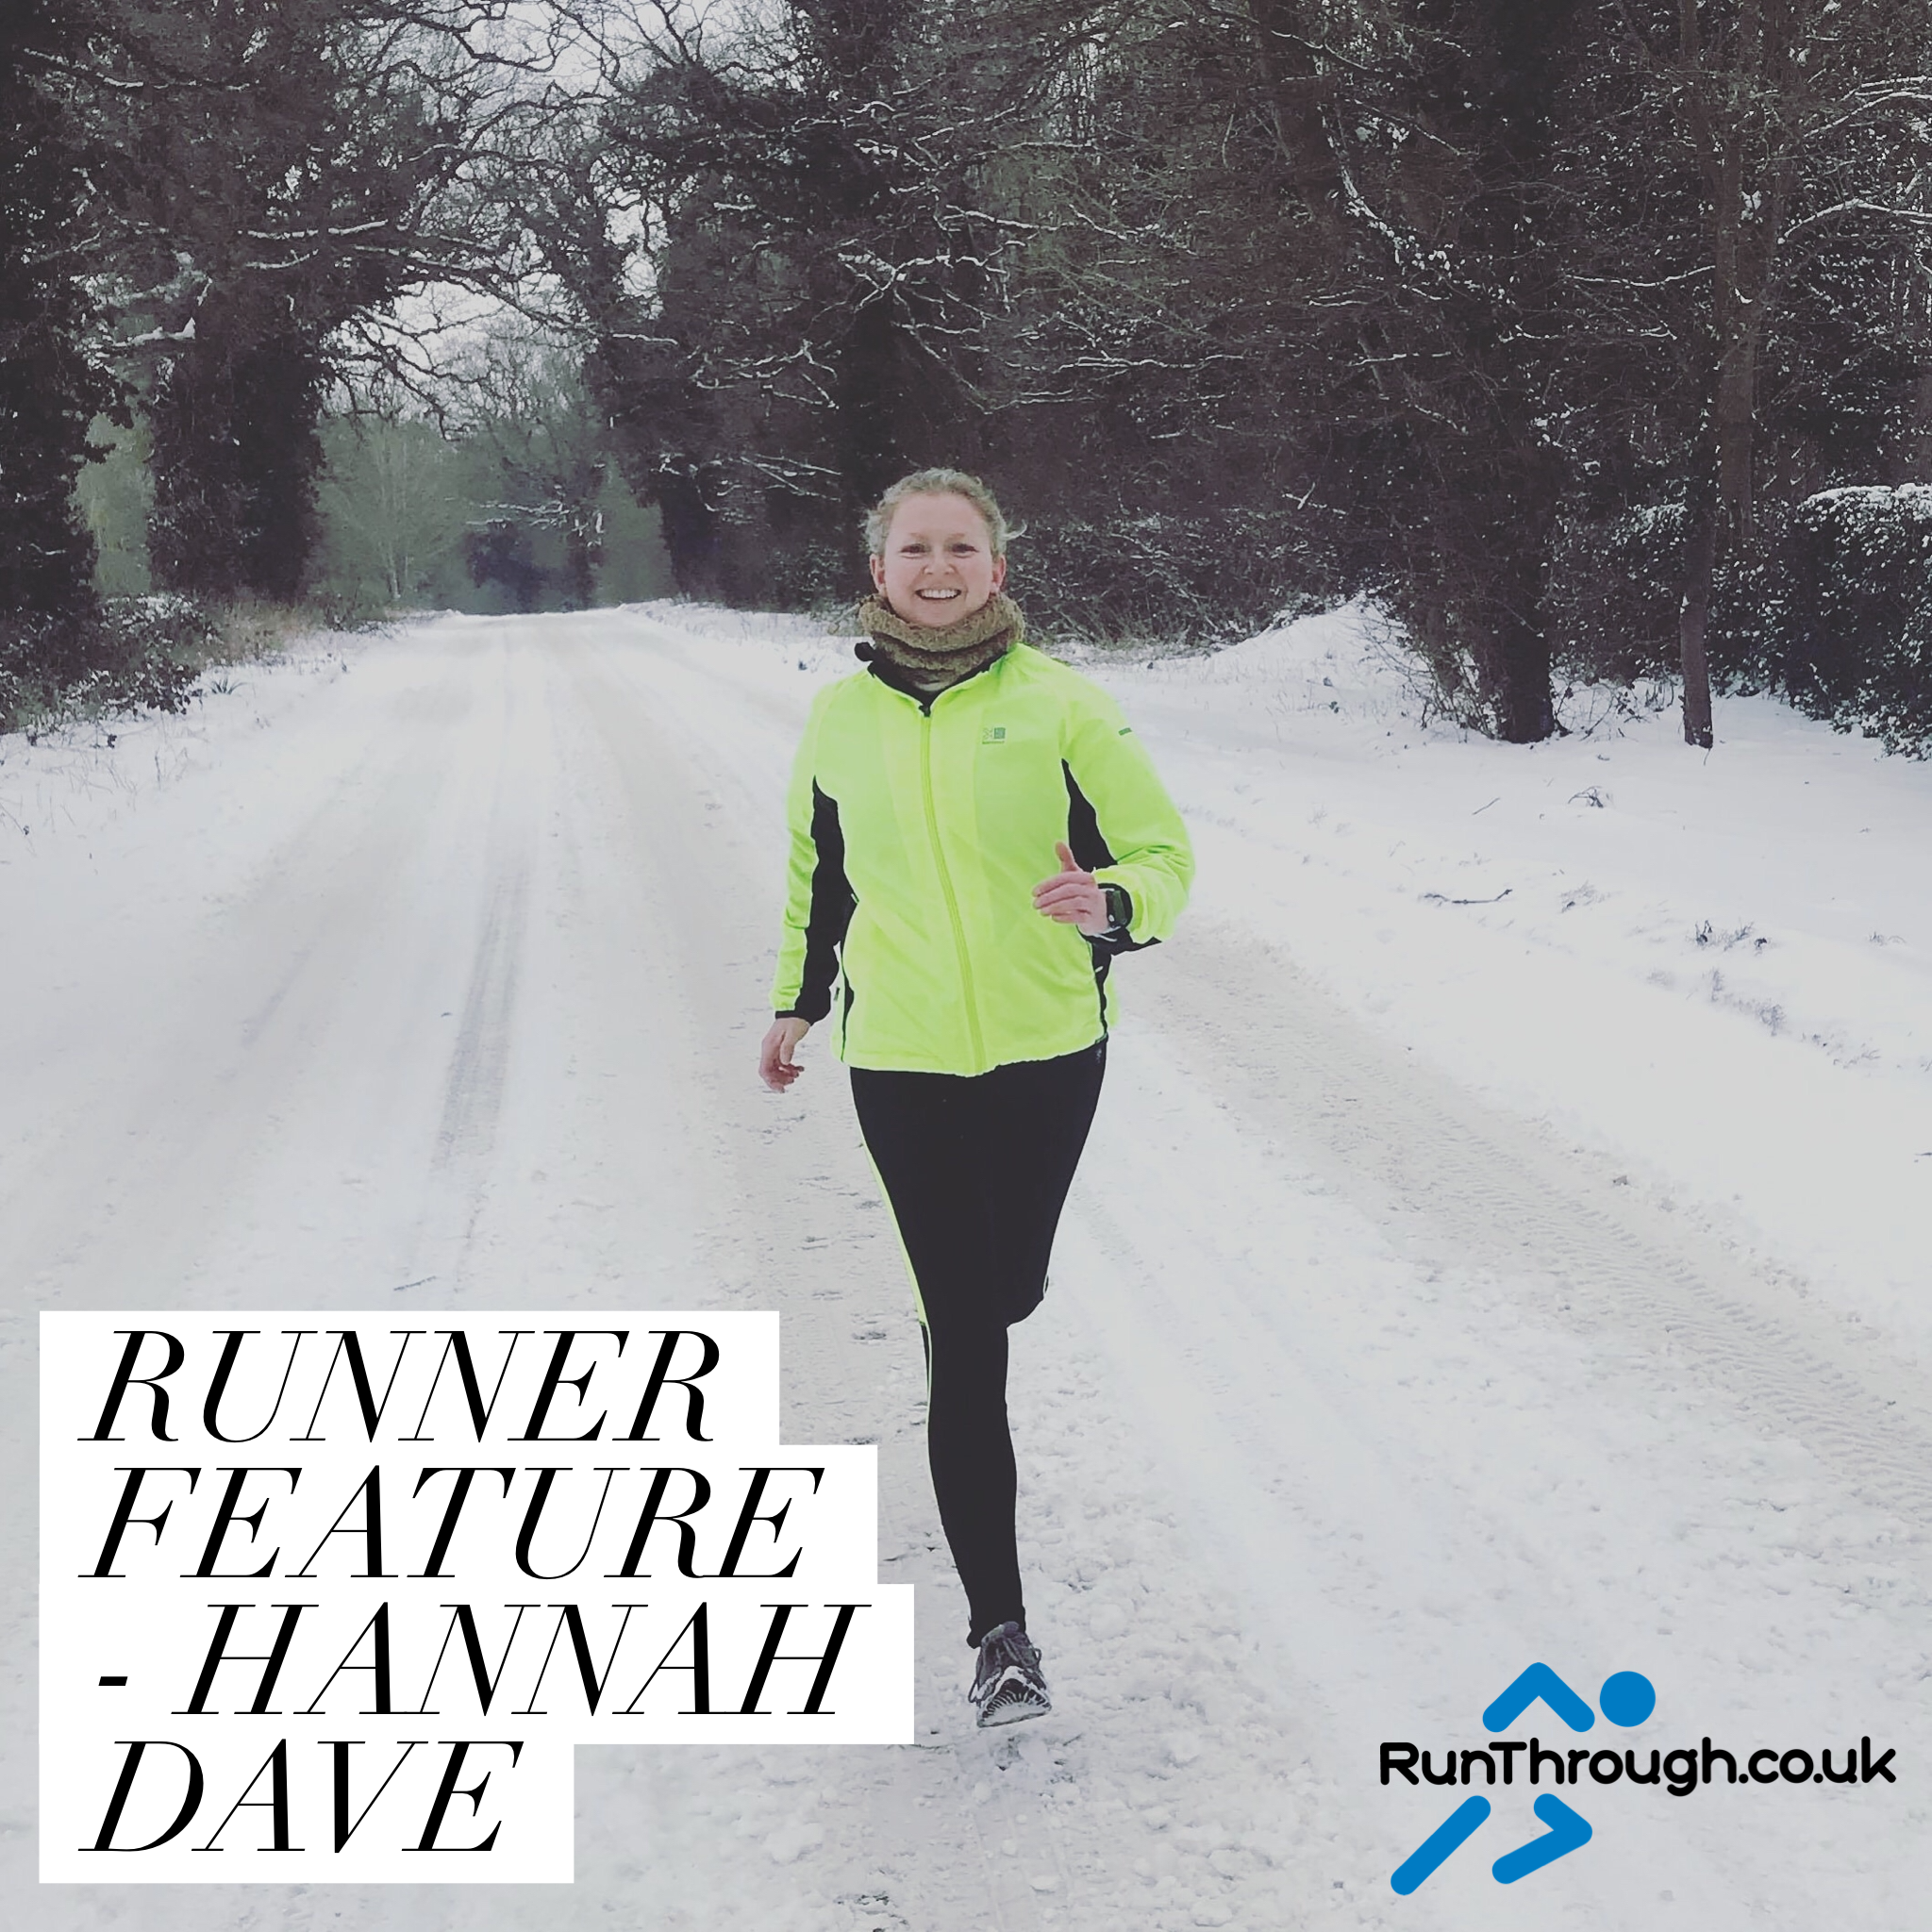 Runner Feature – Hannah Dave